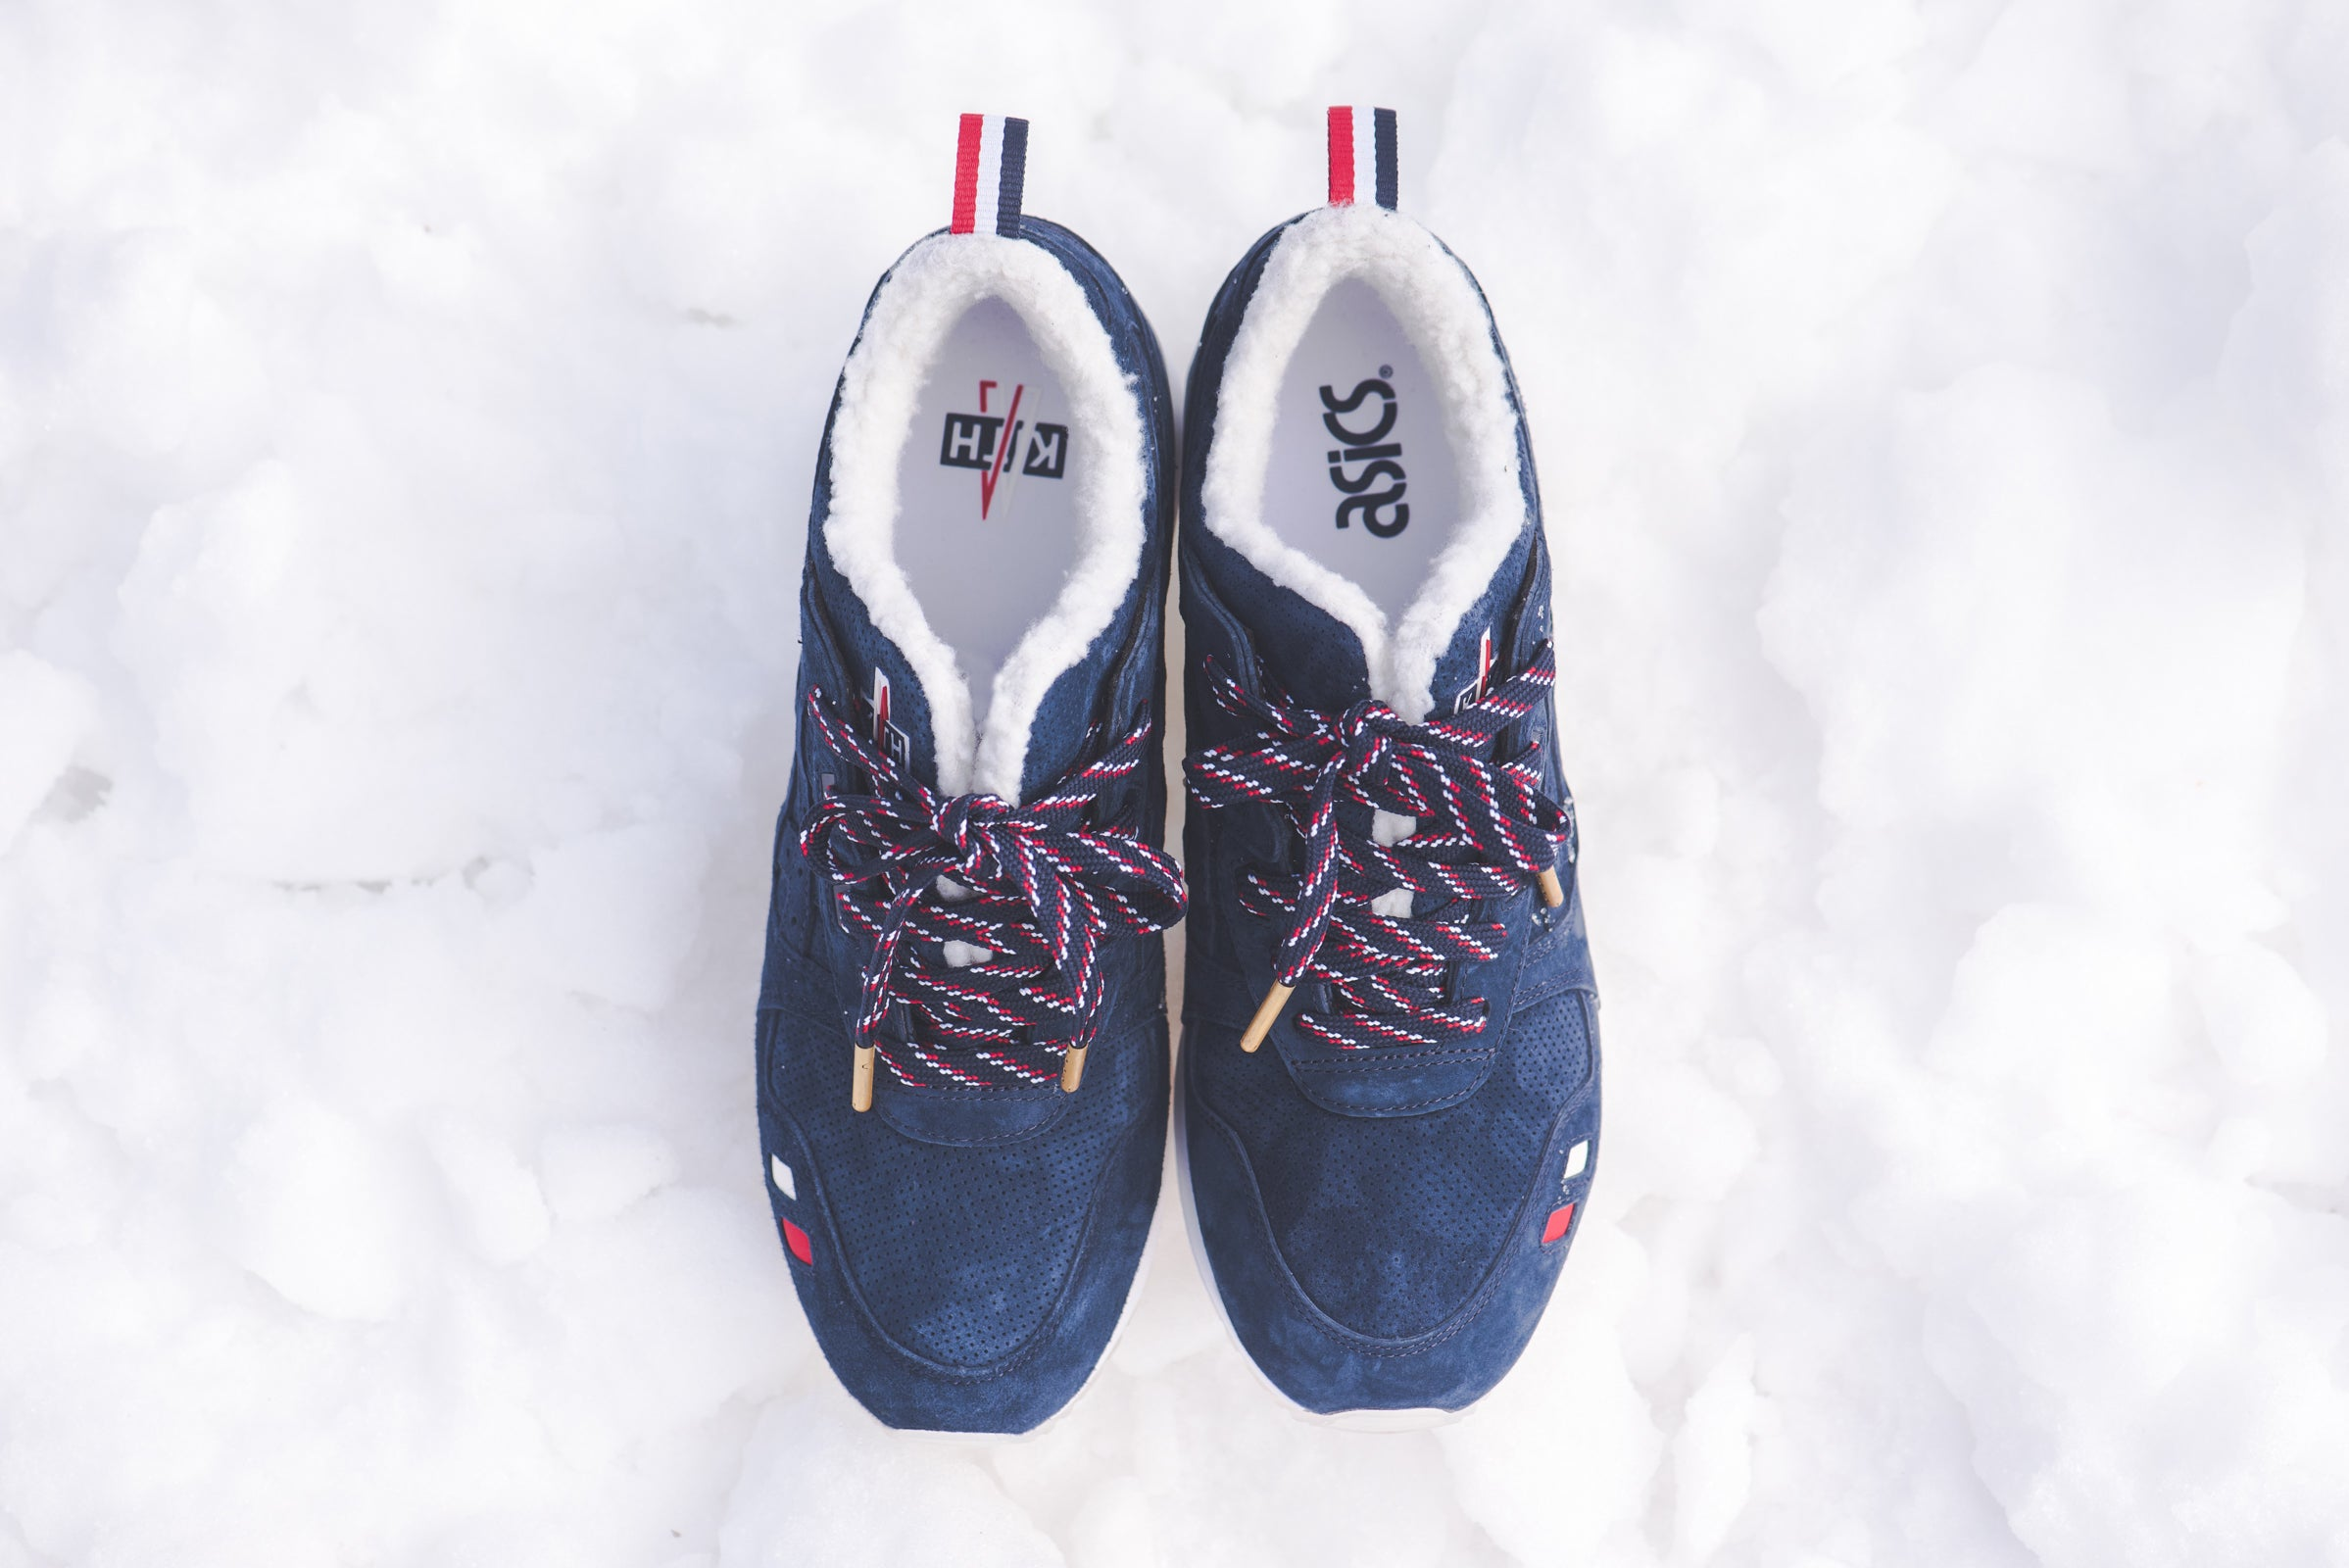 new style 14149 2346b Kith x Moncler x Asics Gel-Lyte III